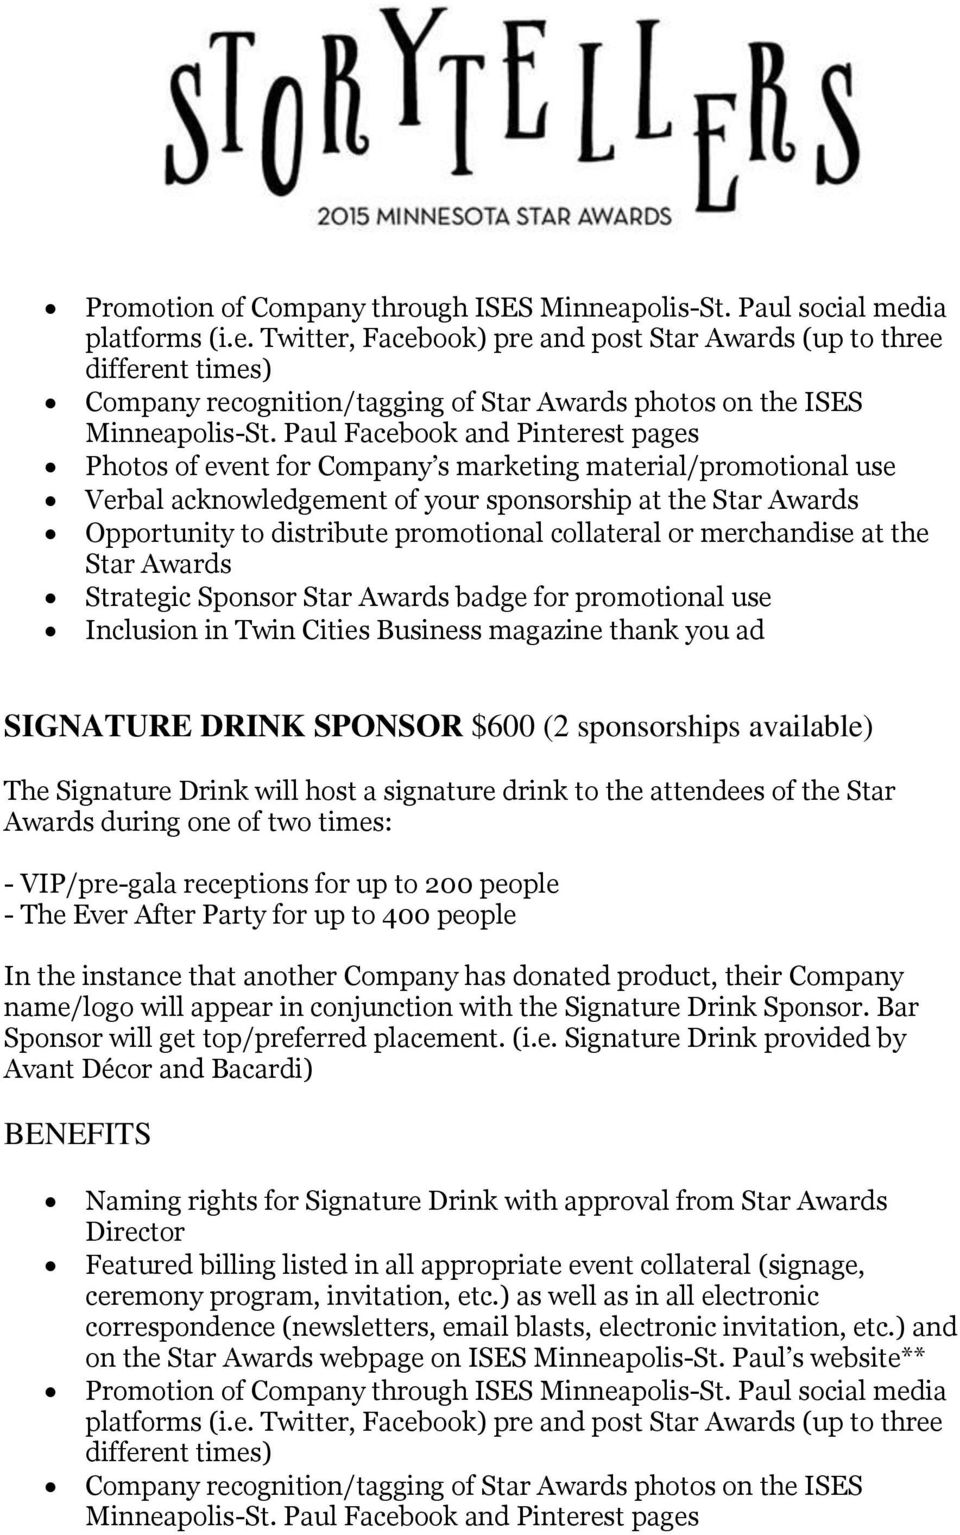 DRINK SPONSOR $600 (2 sponsorships available) The Signature Drink will host a signature drink to the attendees of the Star Awards during one of two times: - VIP/pre-gala receptions for up to 200